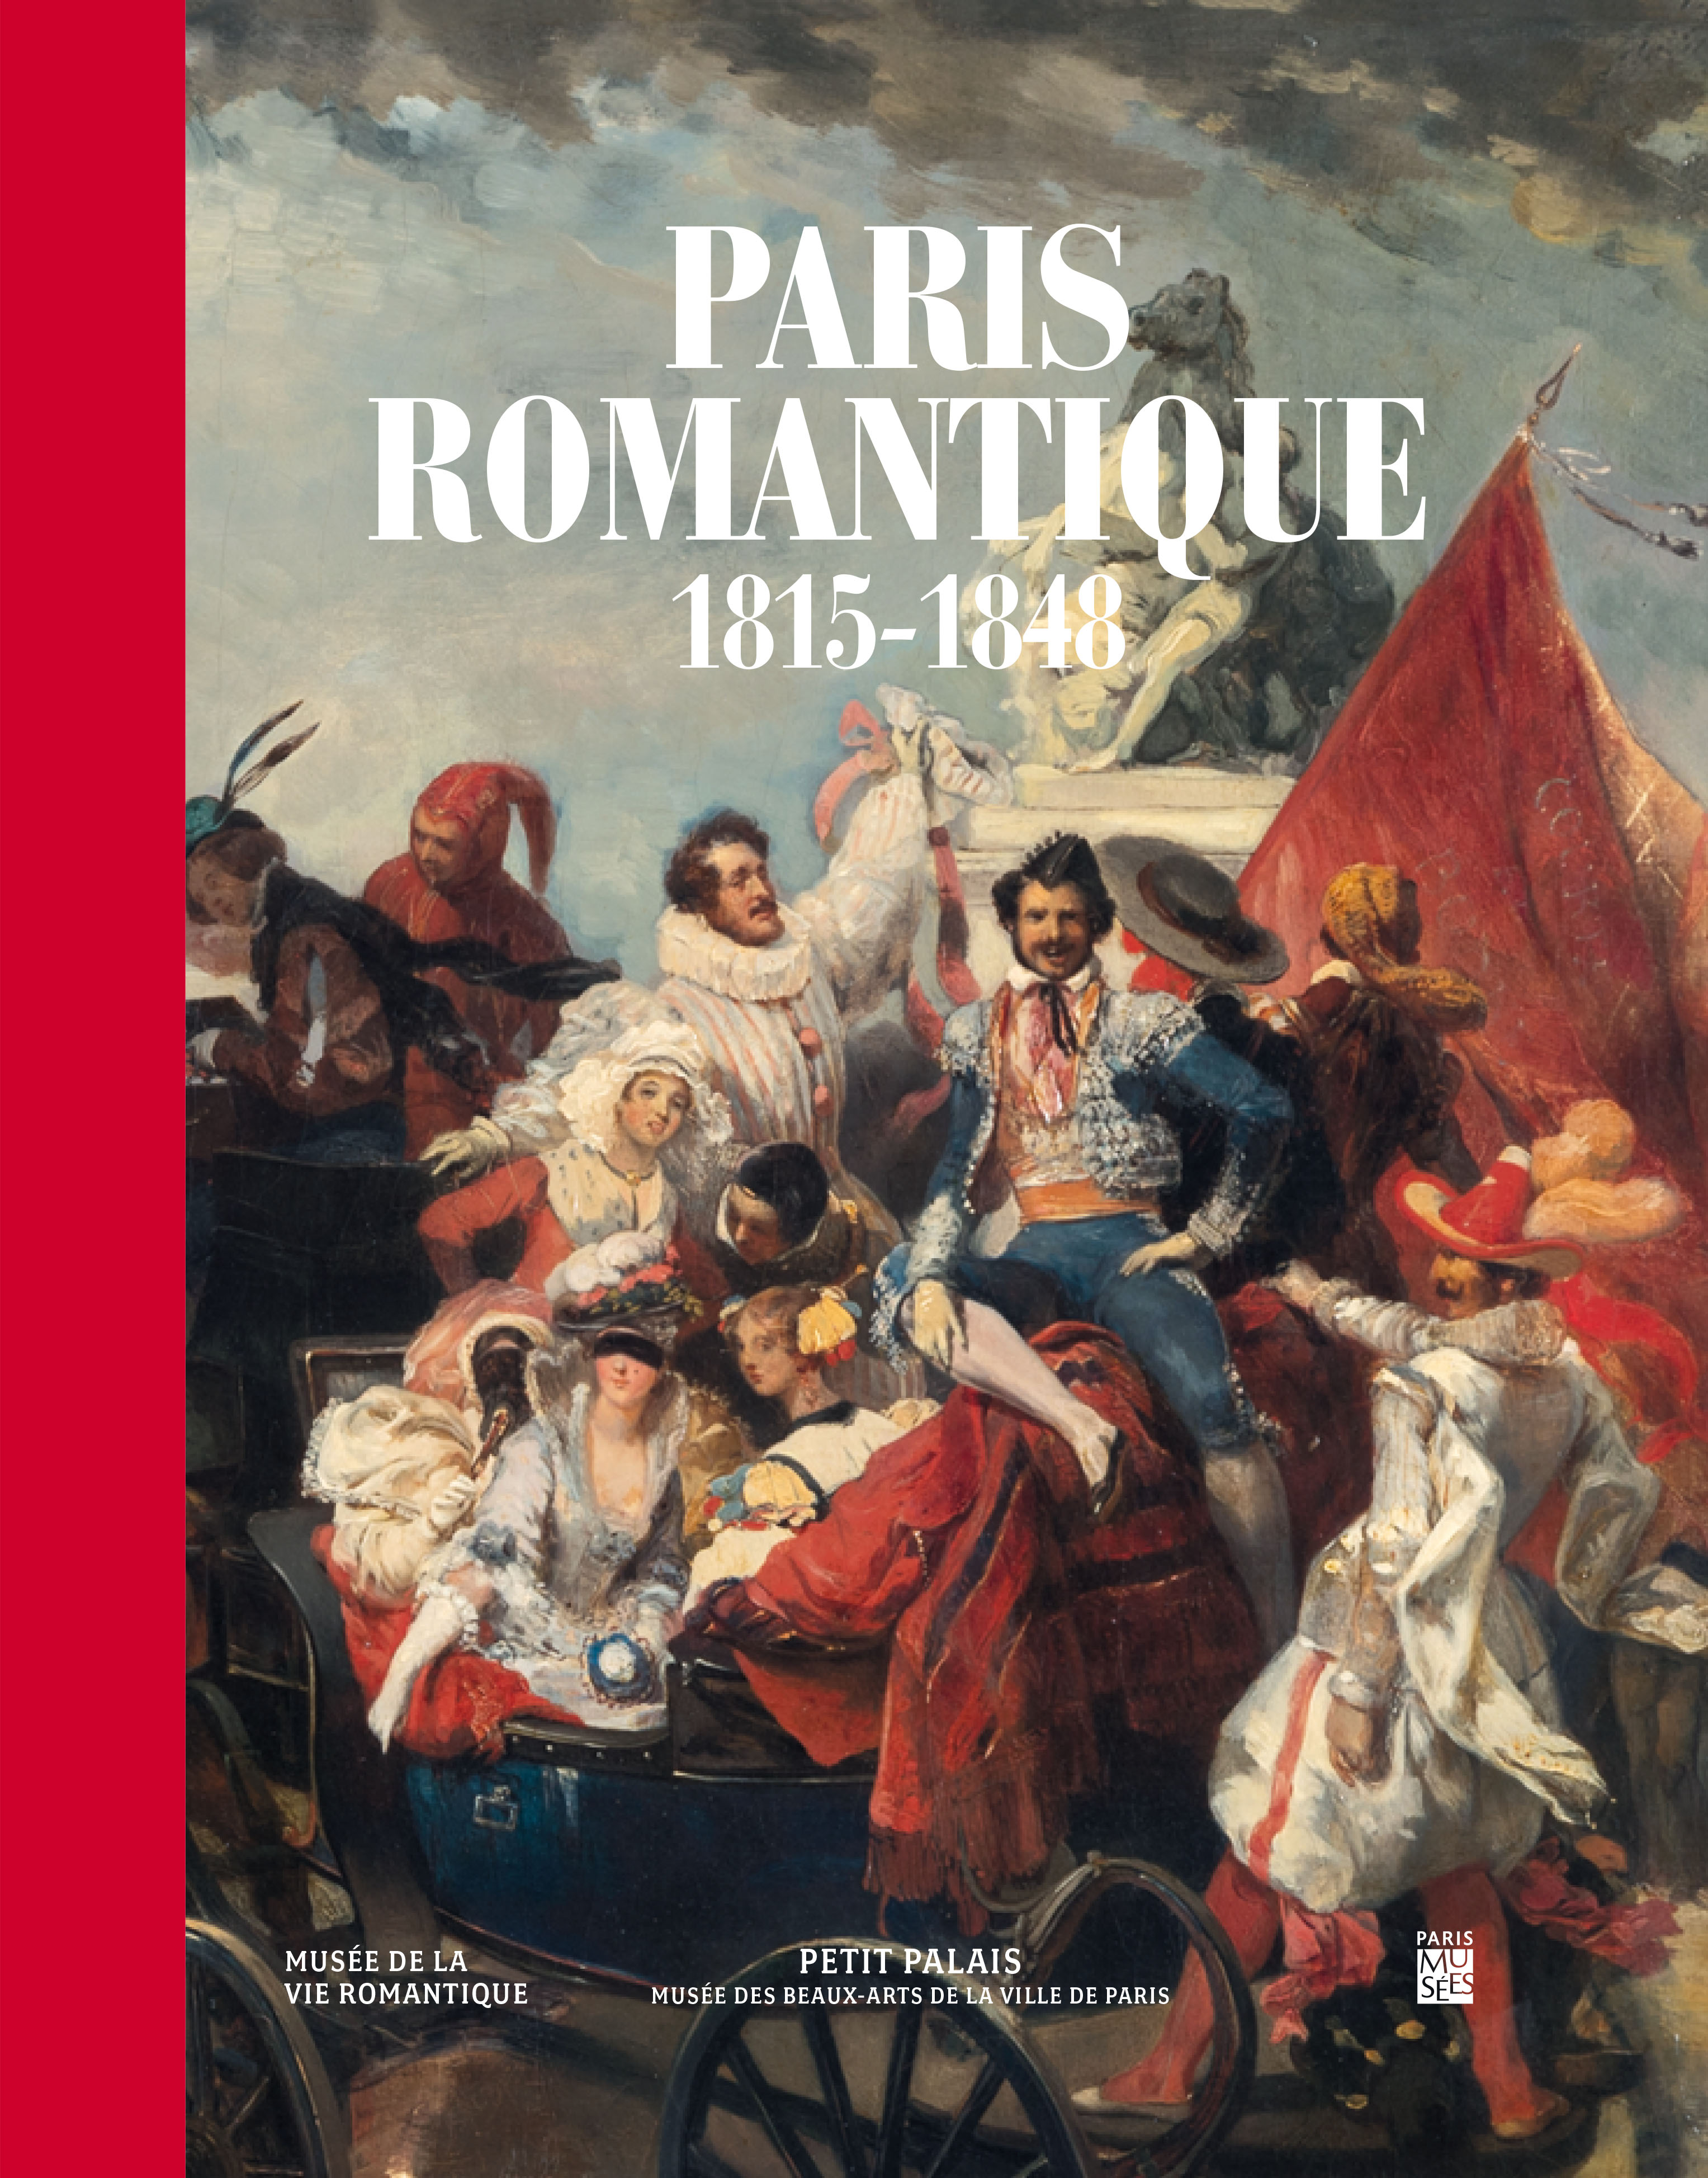 Couverture du catalogue Paris romantique